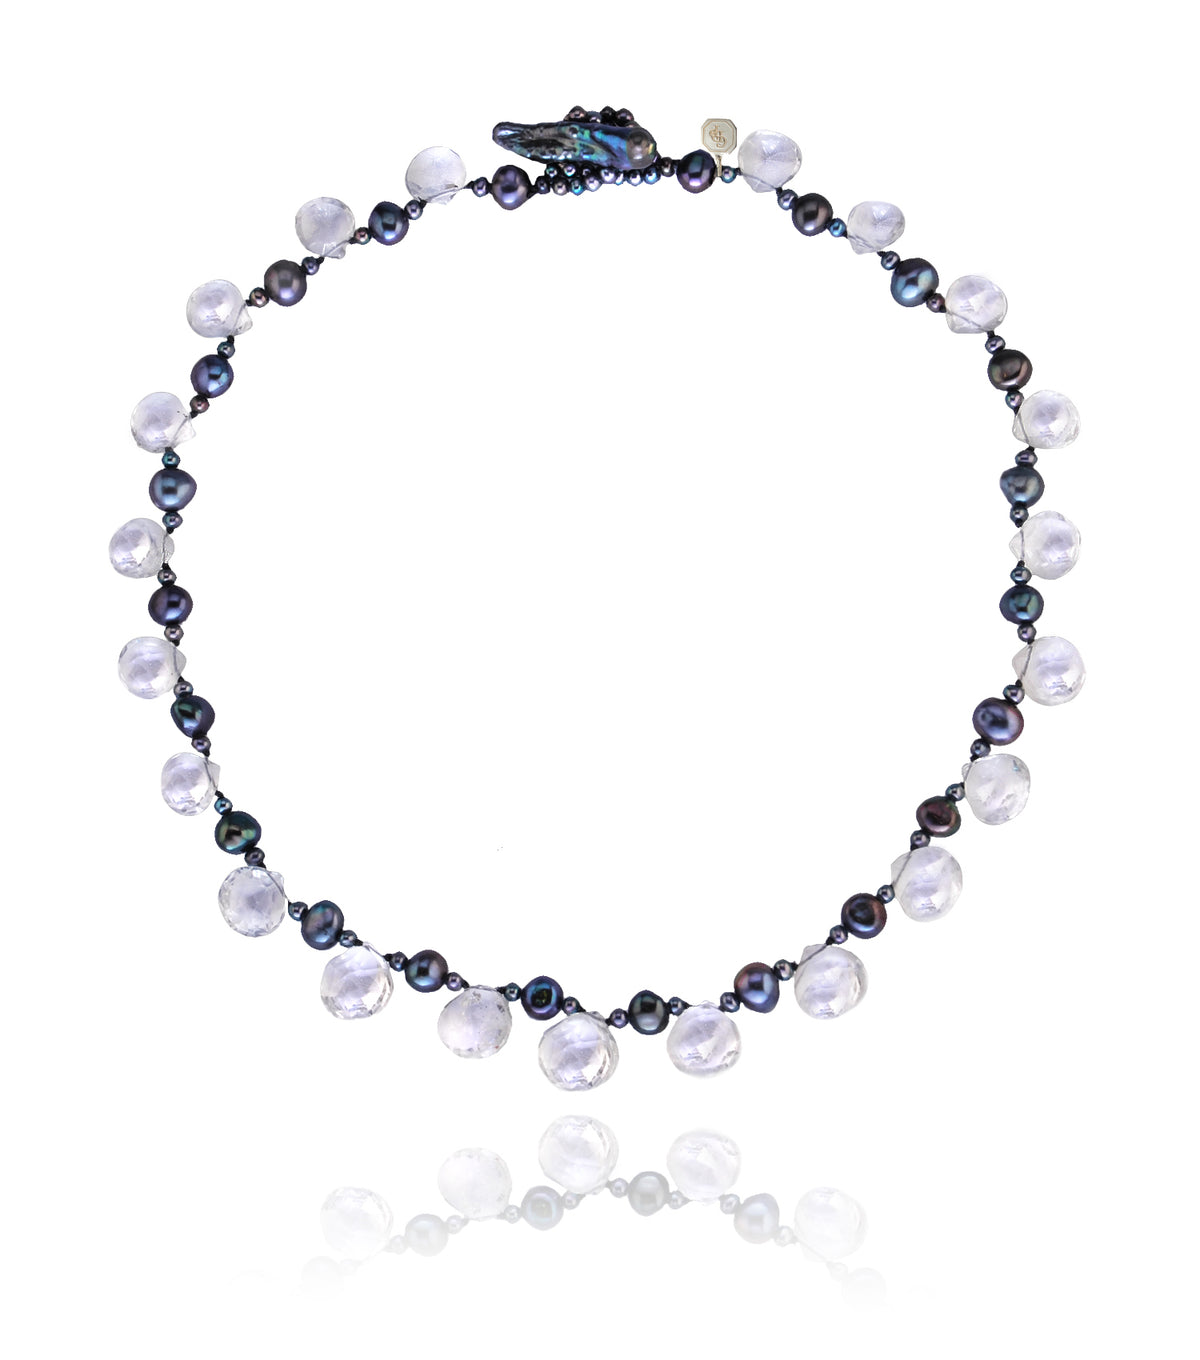 Faceted Rock Crystal Droplet Necklace With Black Pearl Spacers